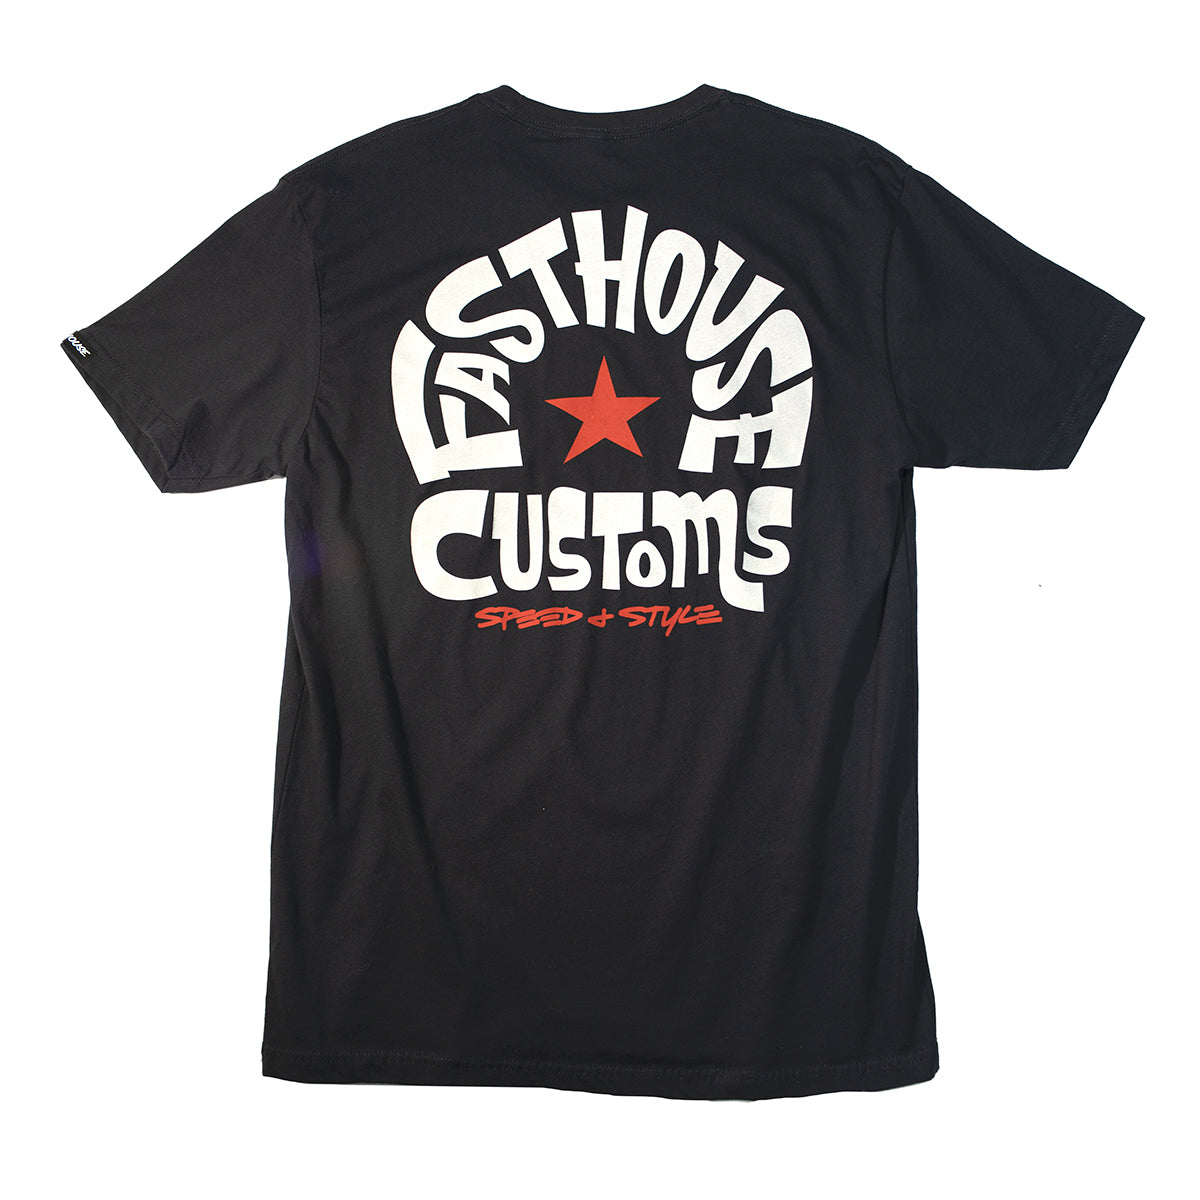 Fasthouse - Funkhouse Tee - Black